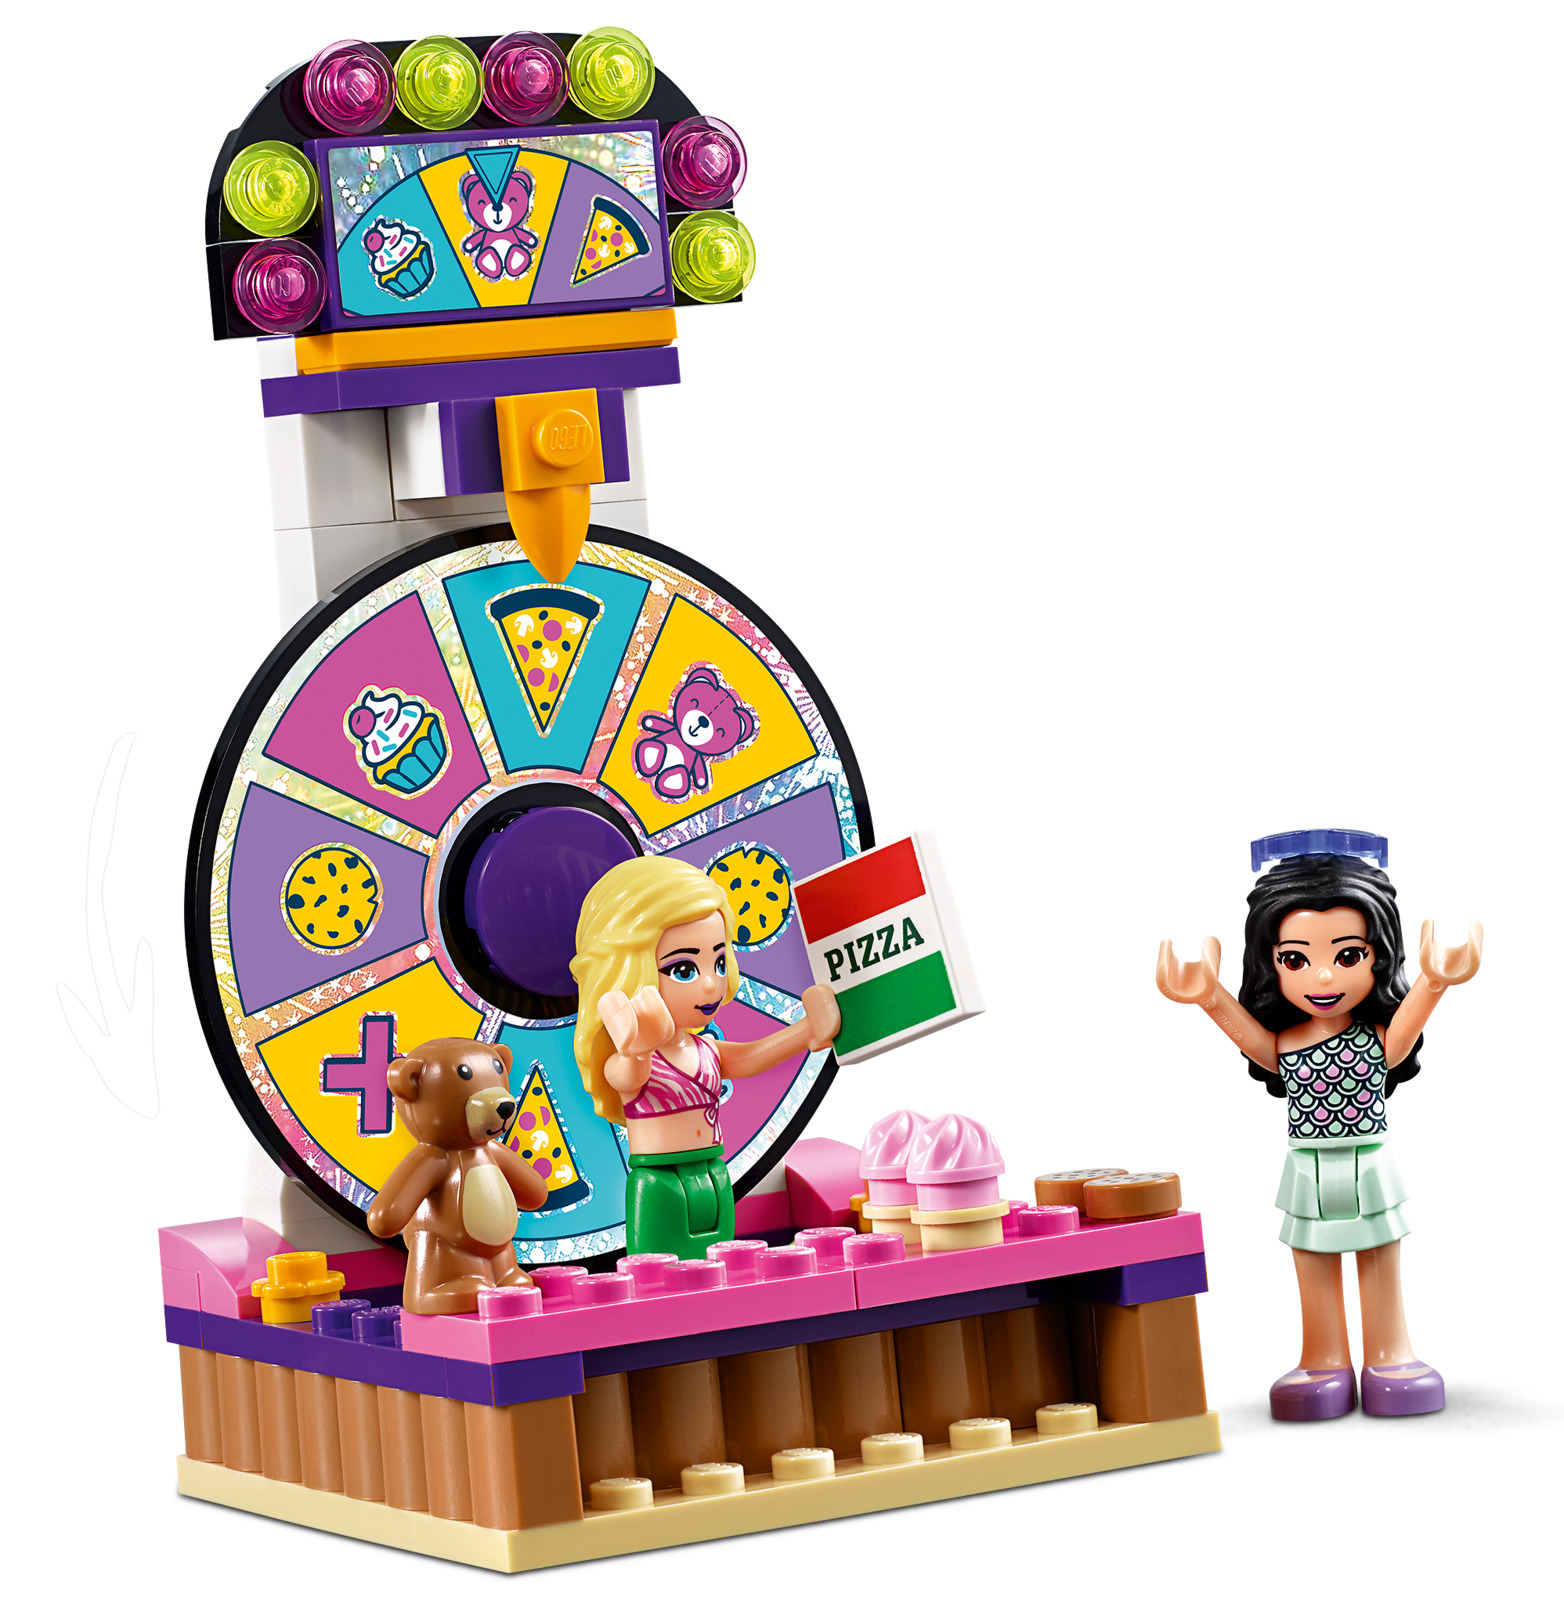 LEGO Friends: Heartlake City Amusement - (41375) image